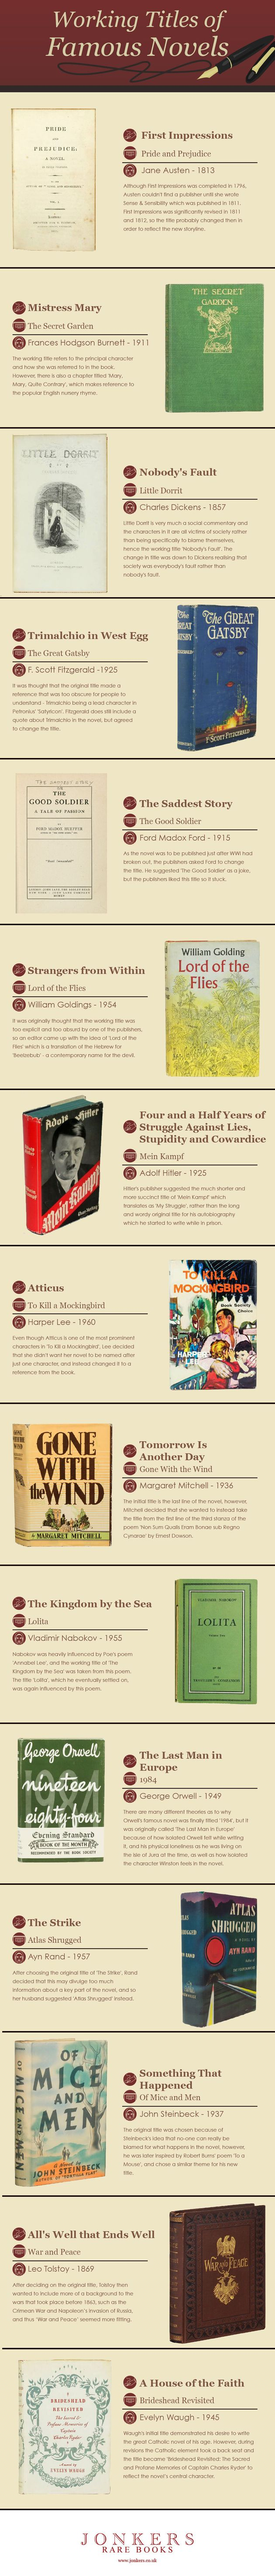 These Famous Books Nearly Had Very Different